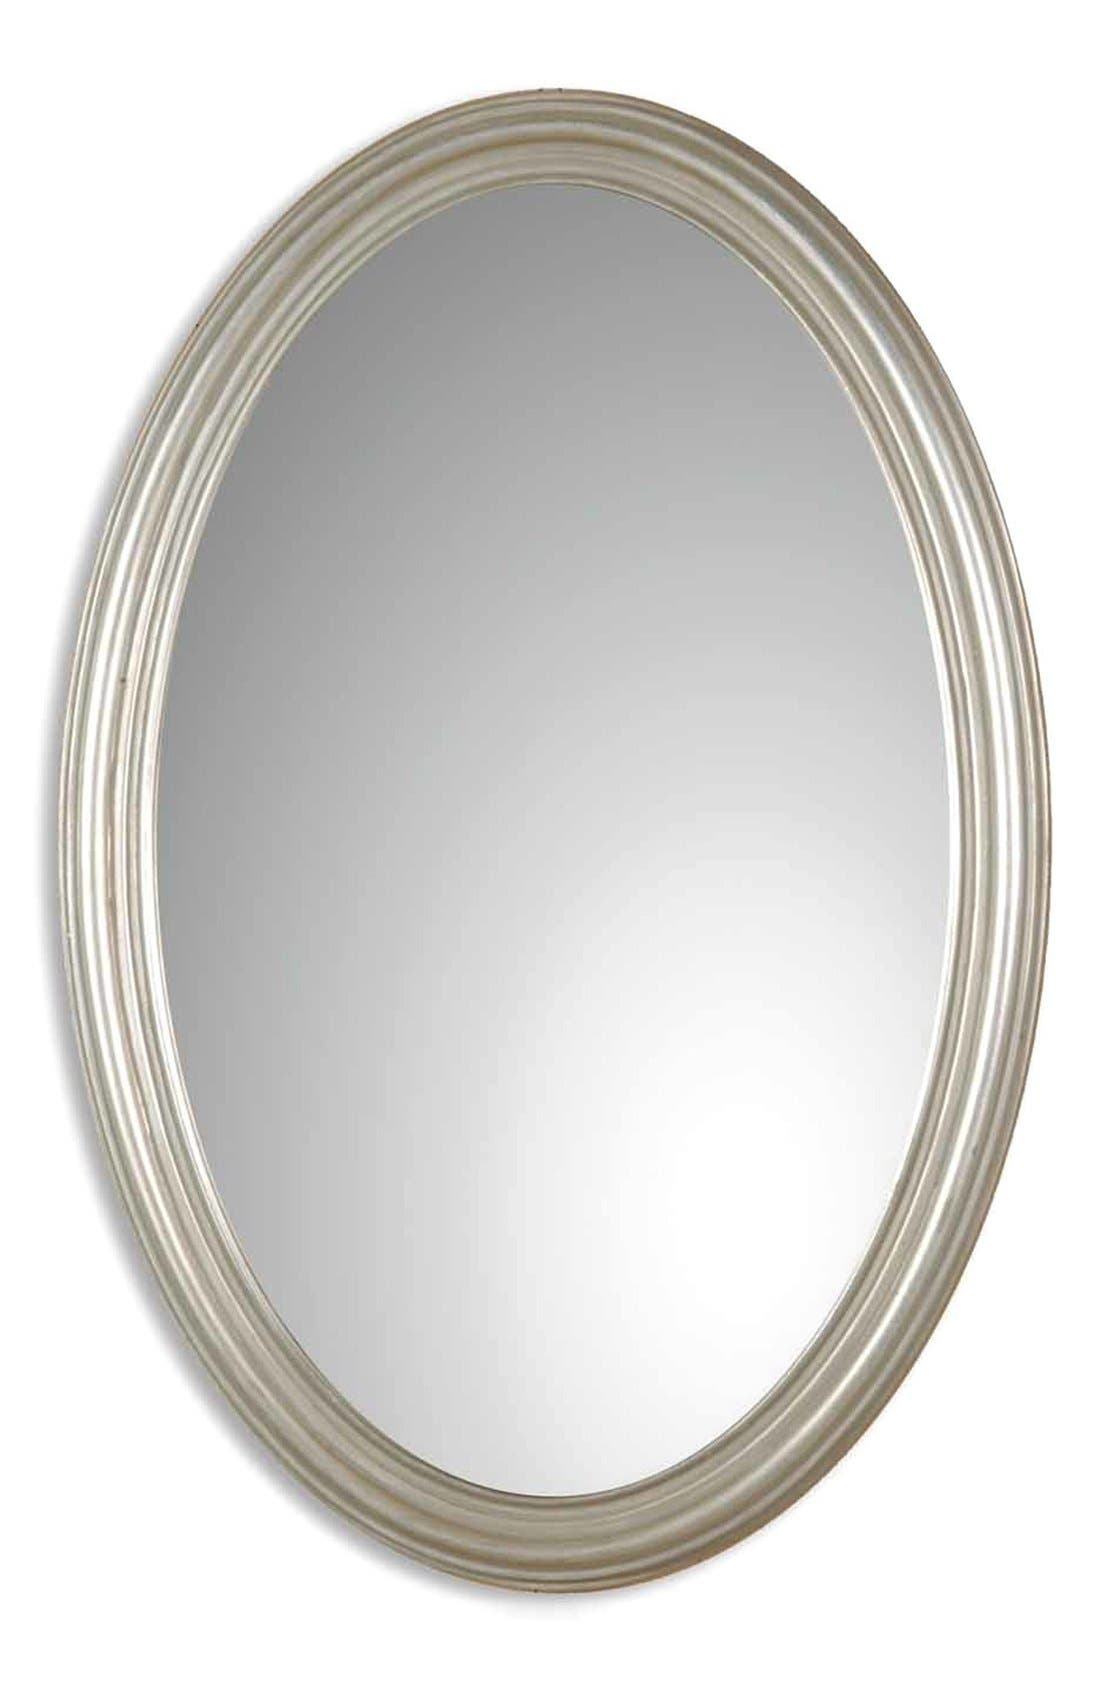 Main Image - Uttermost 'Franklin' Wall Mirror